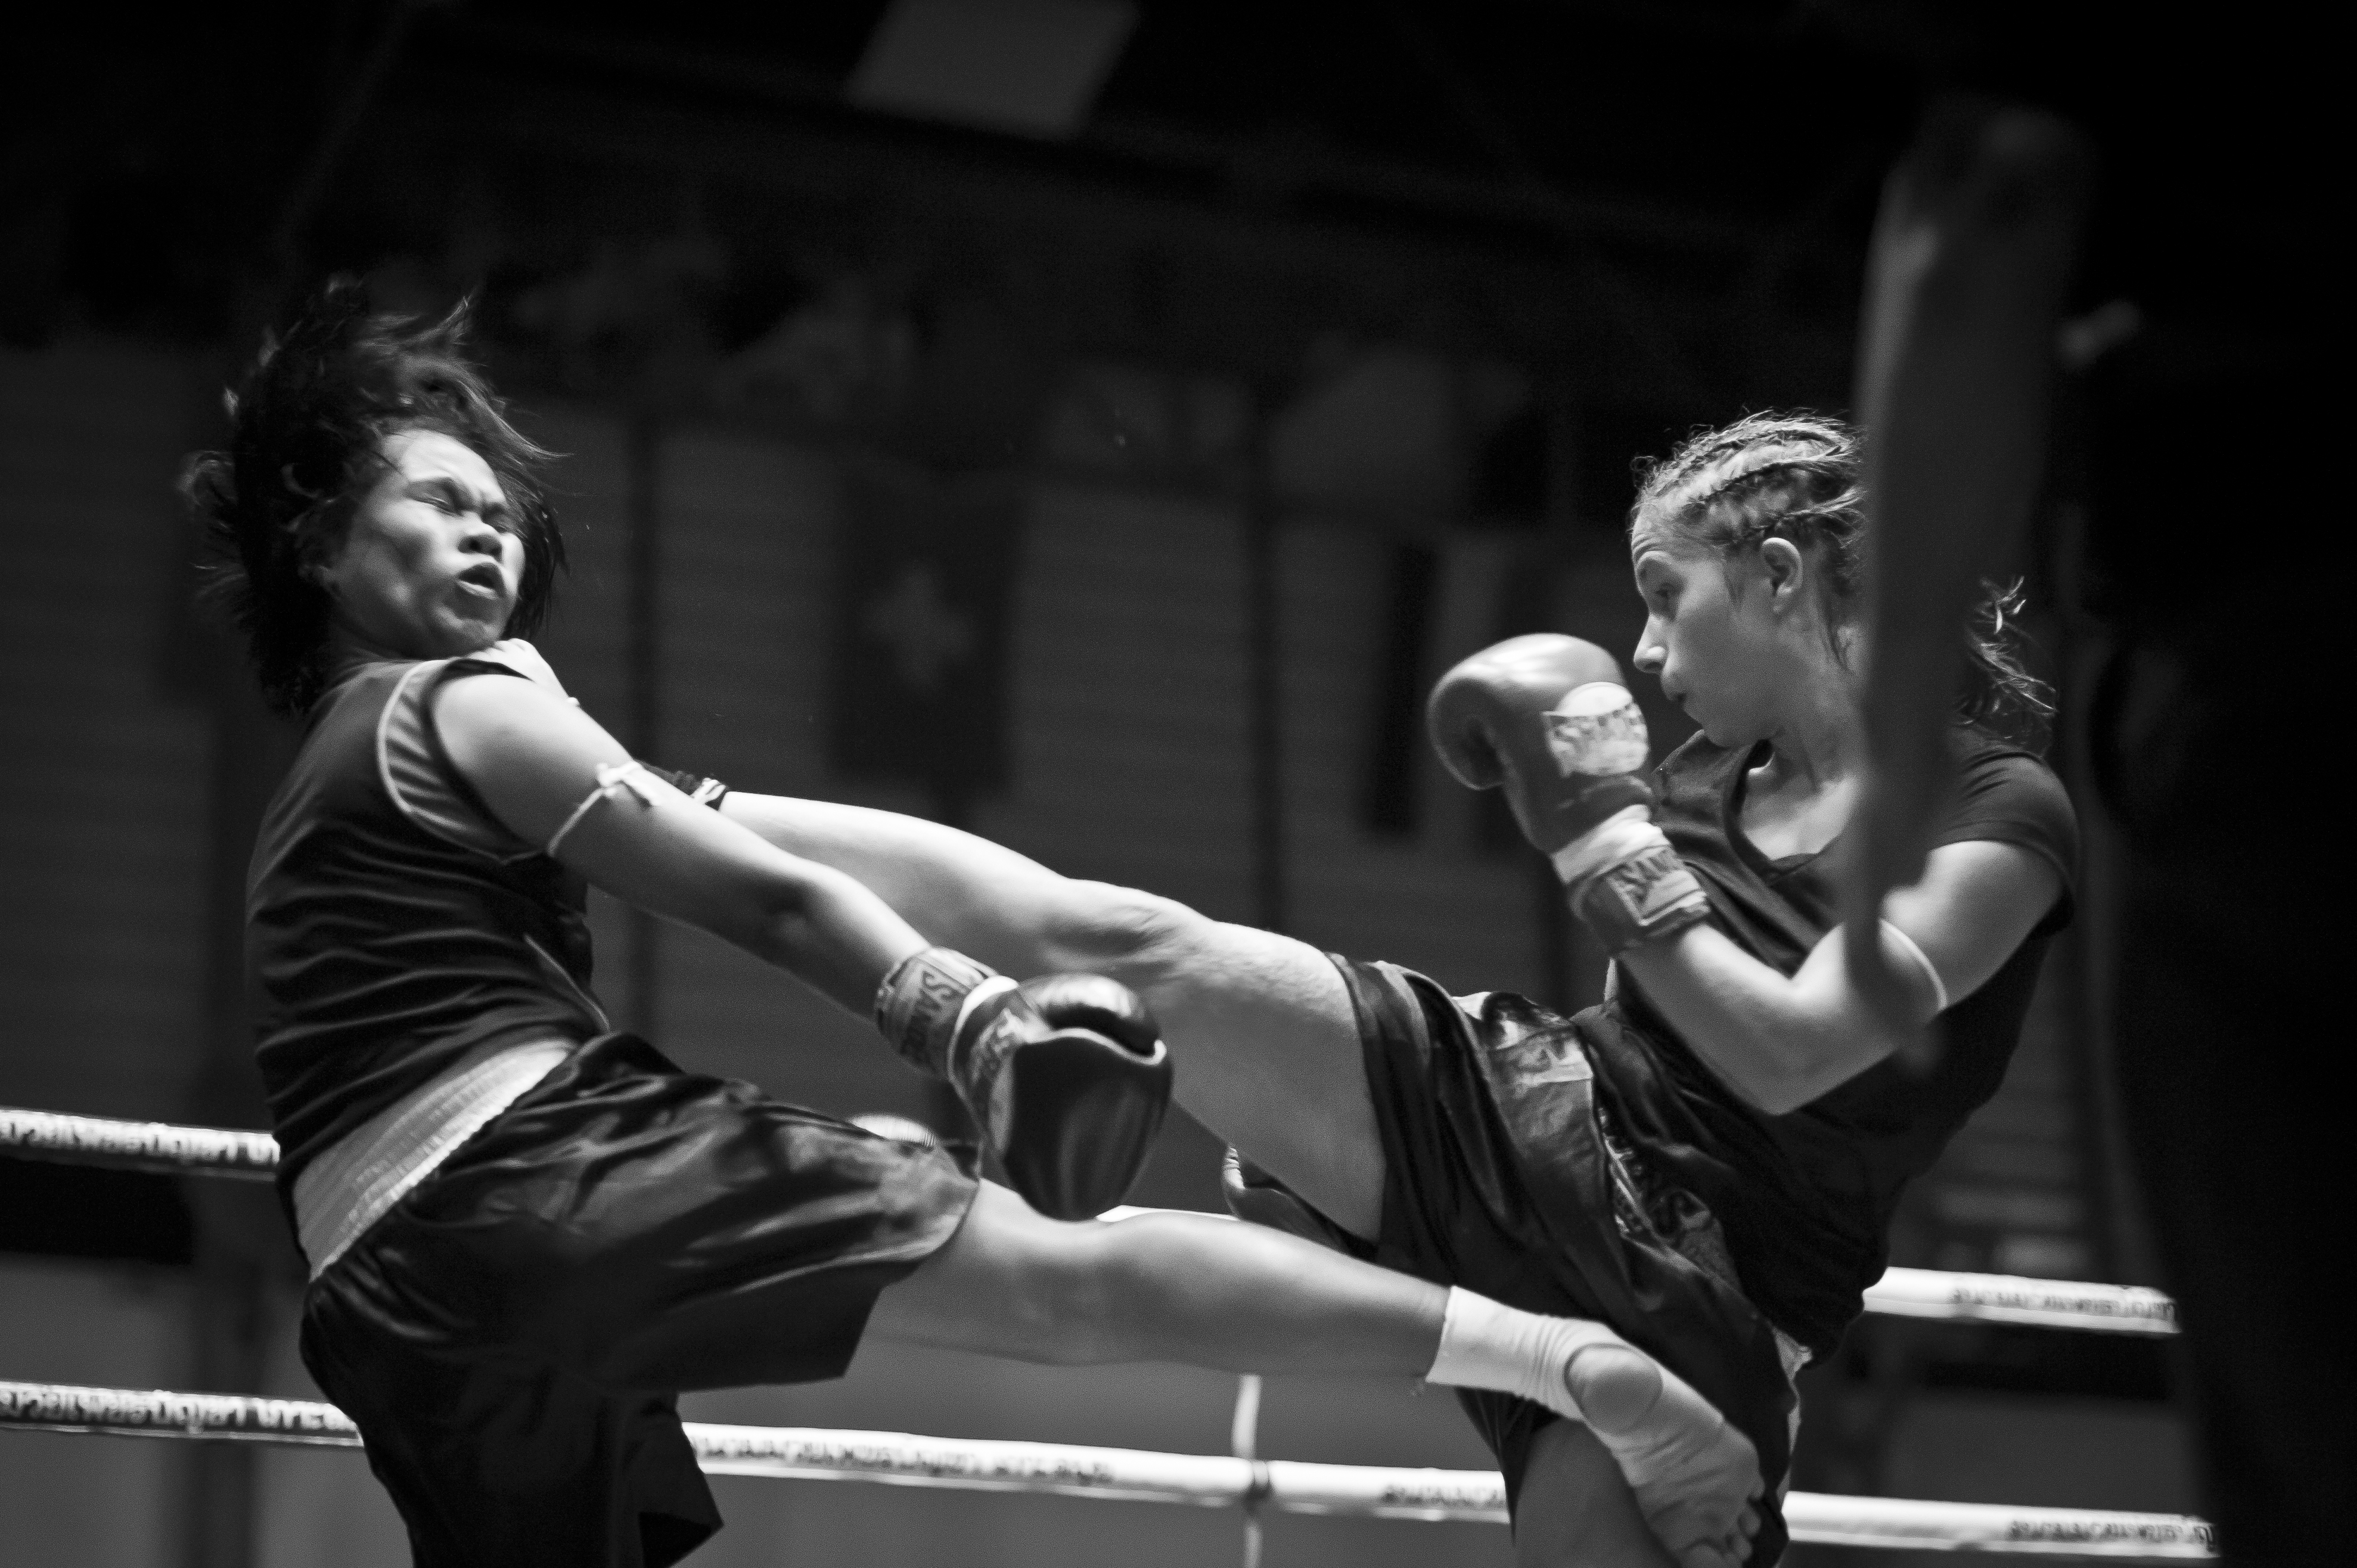 Maëlle Pariez vs thai fighter - High kick